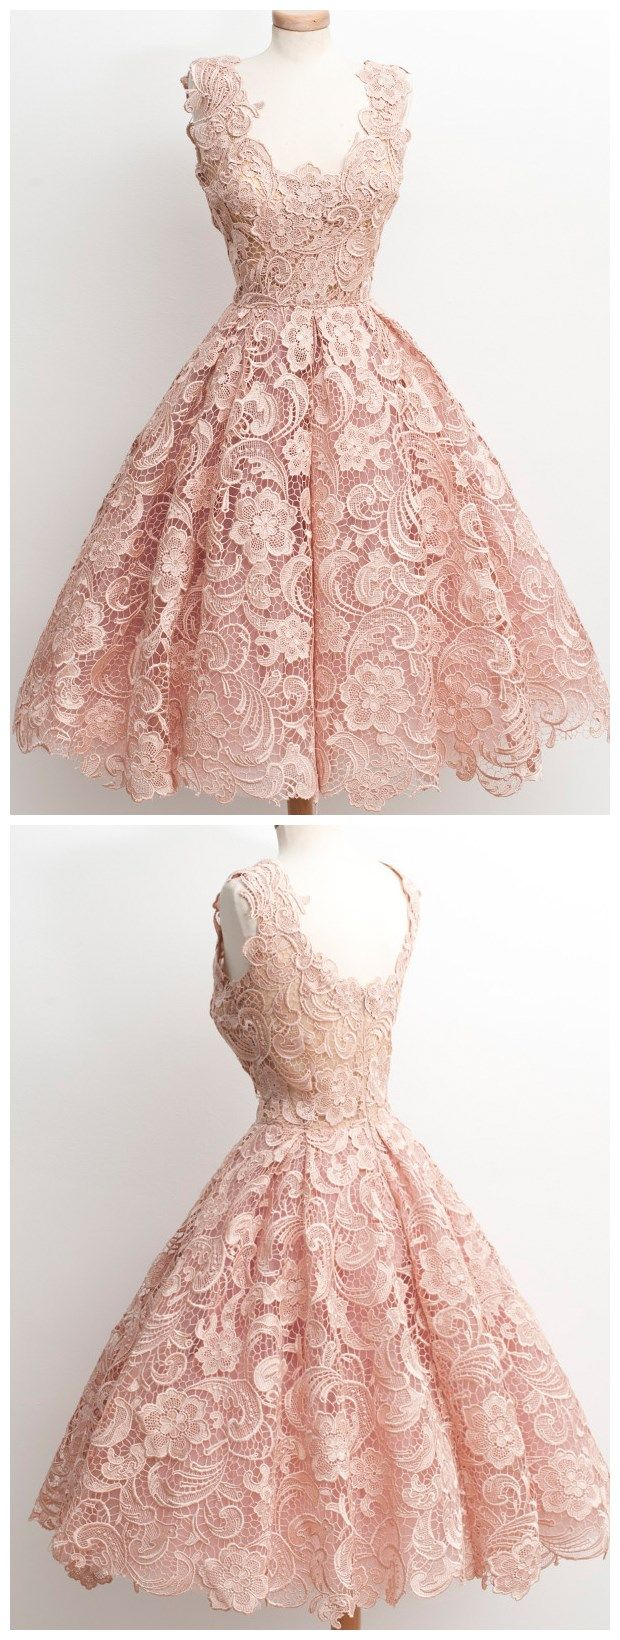 17 best ideas about vintage prom dresses on pinterest